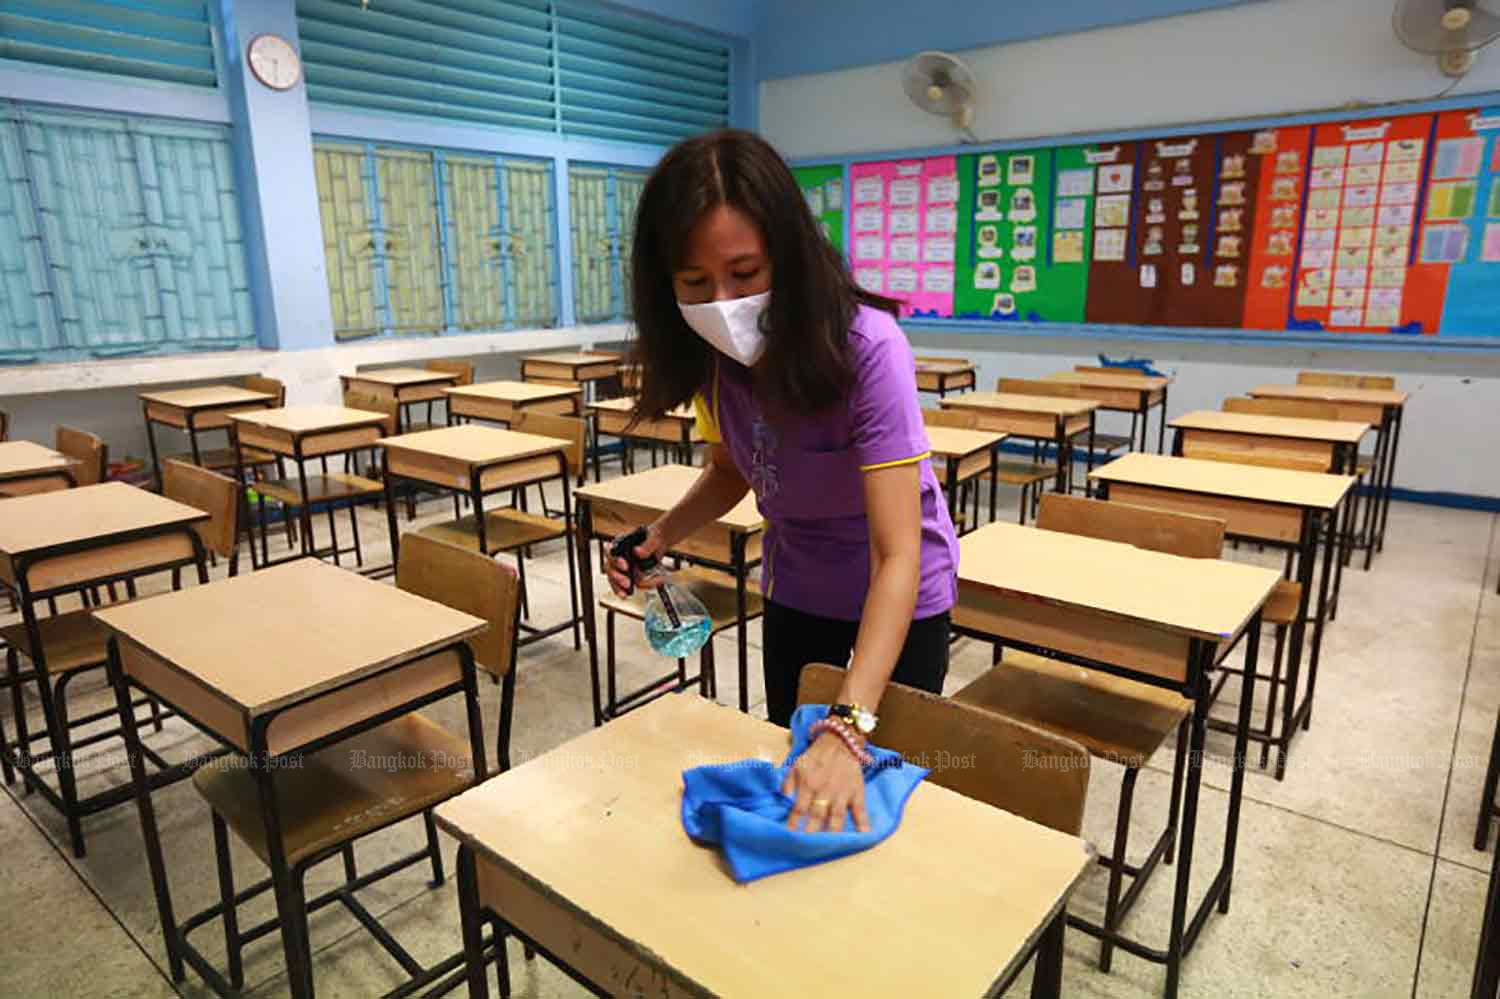 A worker cleans a classroom at Ban Bangkapi School in Bang Kapi district, Bangkok, on Thursday morning. The school is expected to reopen on Monday as the govenment eases Covid-19 restrictions. (Photo: Somchai Poomlard)